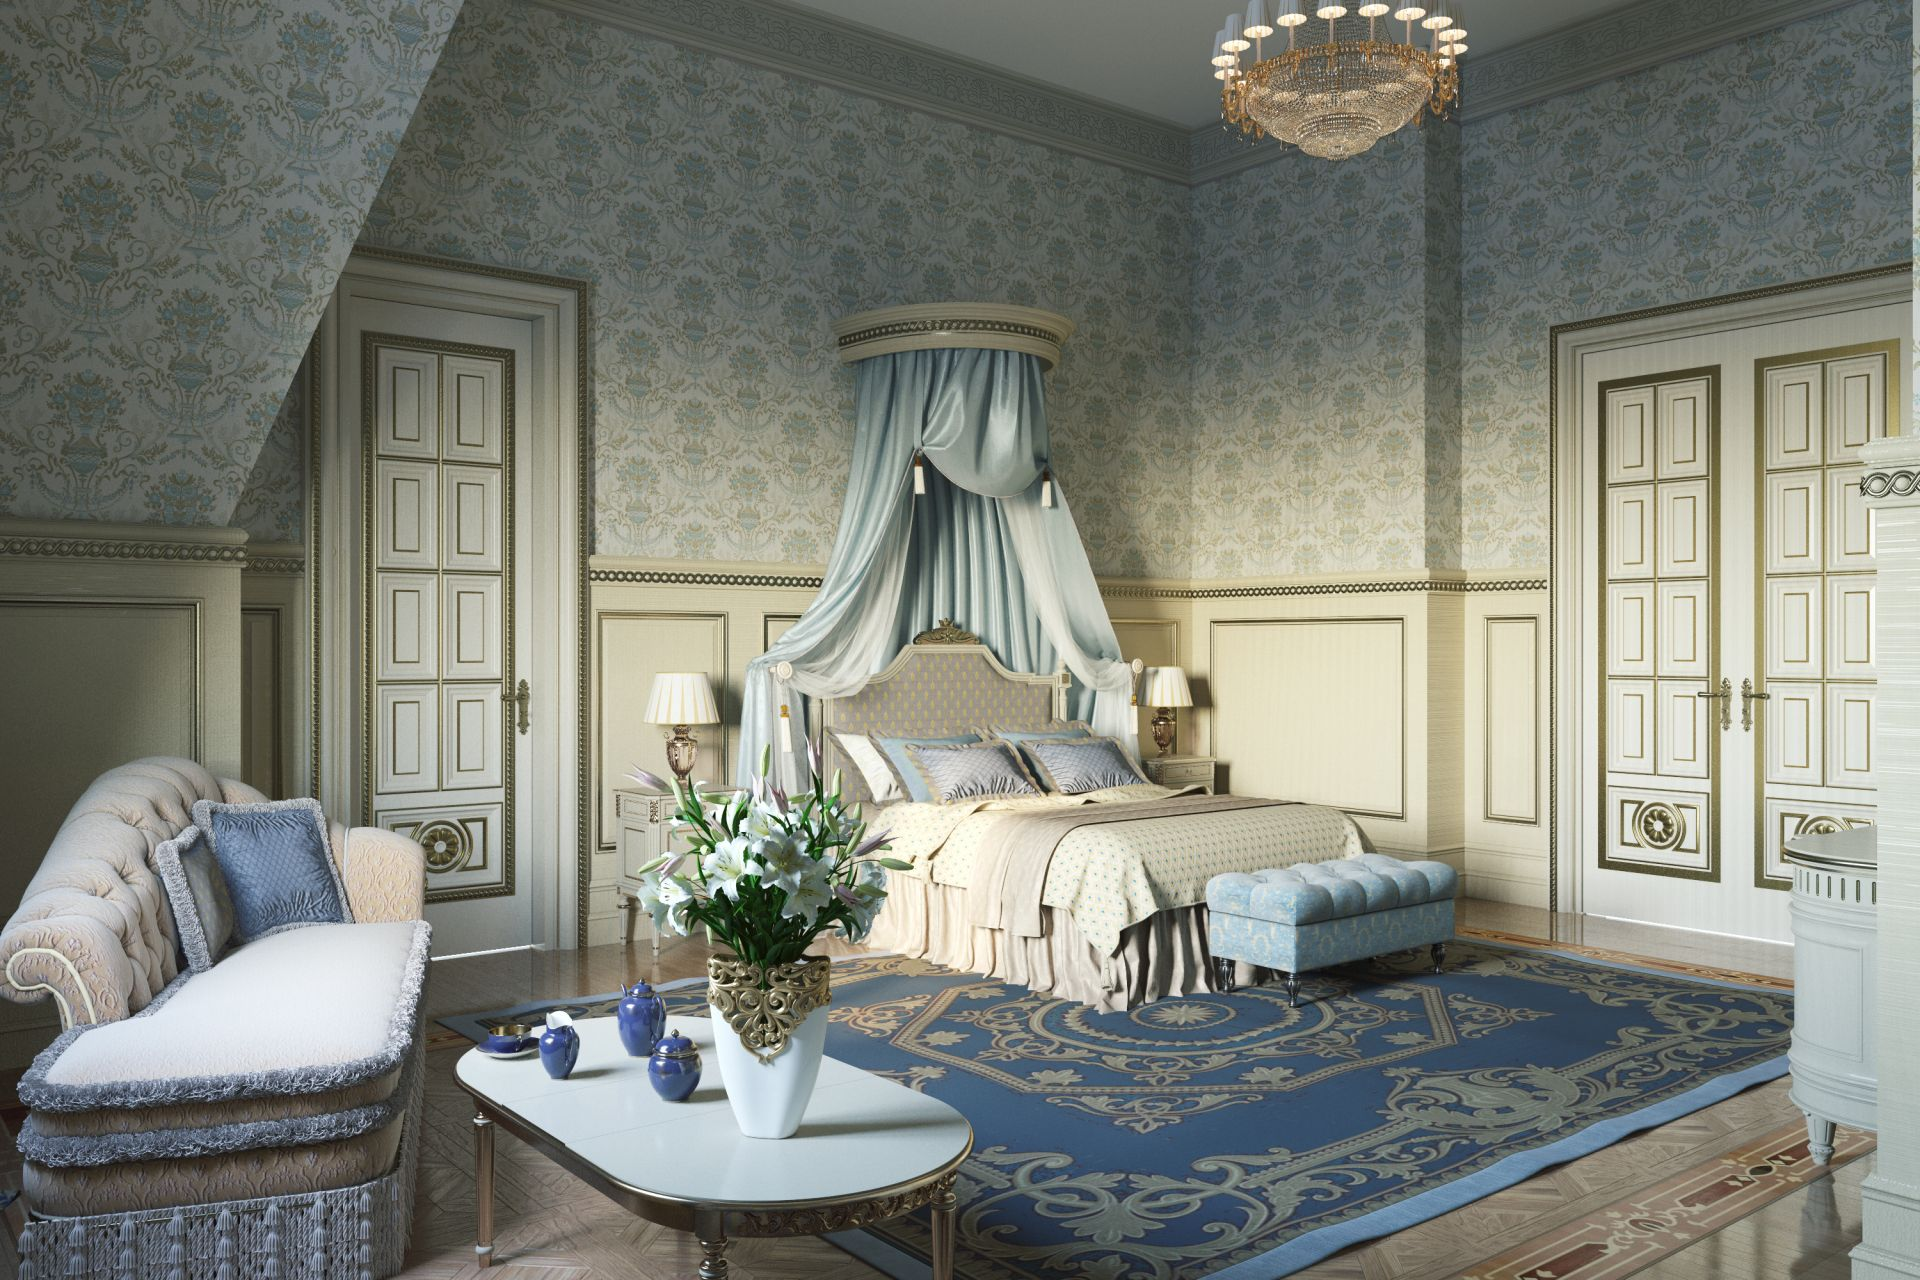 Bedroom in the residence